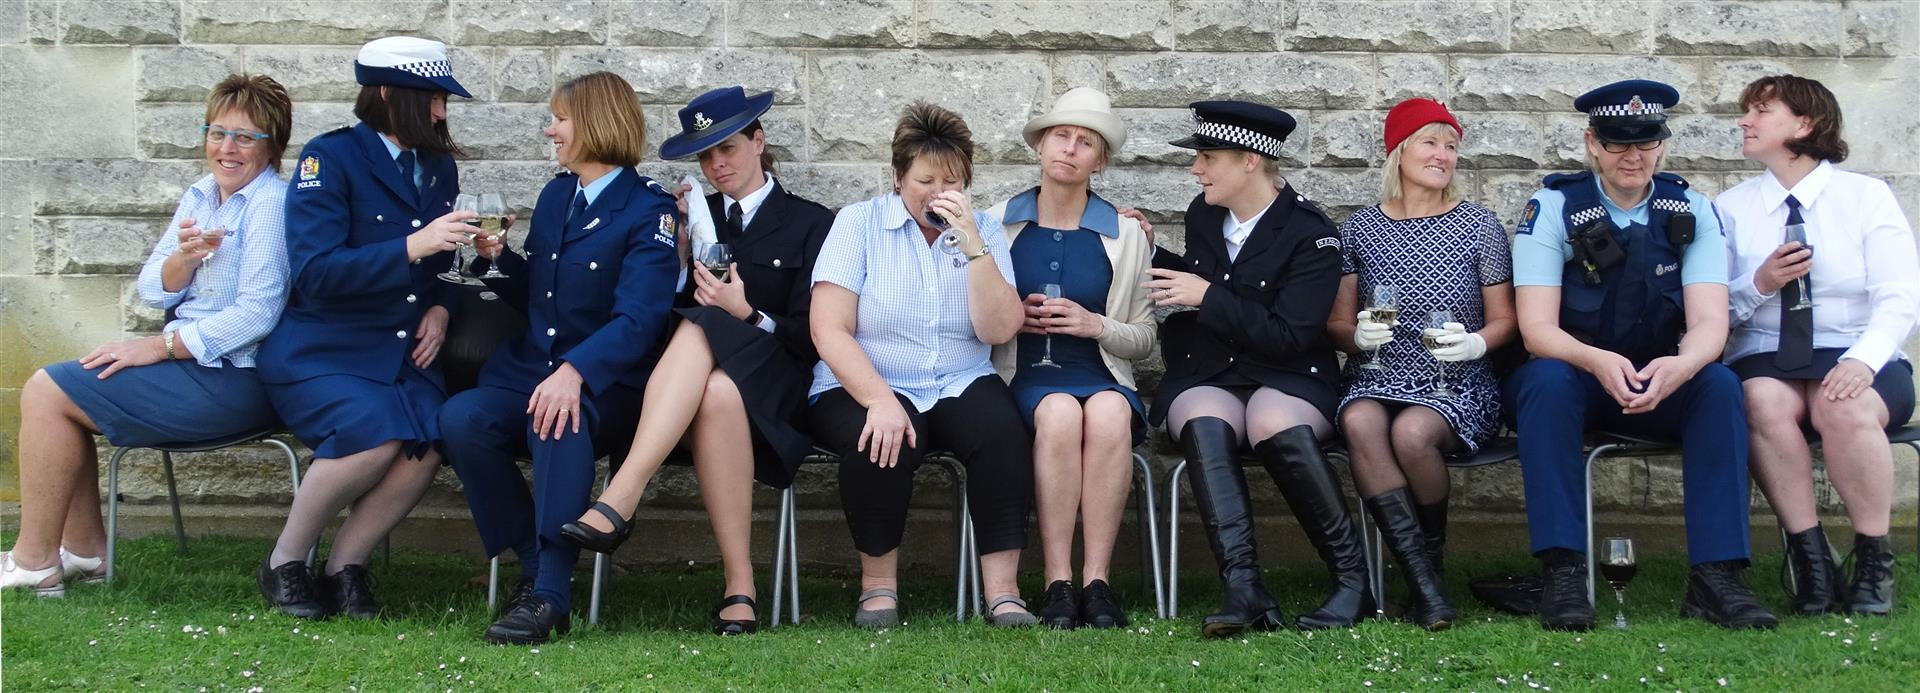 Front-line police officers and administrative staff Sue Pennycook (left), Senior Constable Carrie Hamilton, Constable Ruth Perham, Constable Olivia Winbush, Robyn McKenzie, Senior Constable Sandy Agnew, Detective Sergeant Hannah Booth, Adele Herron, Senio